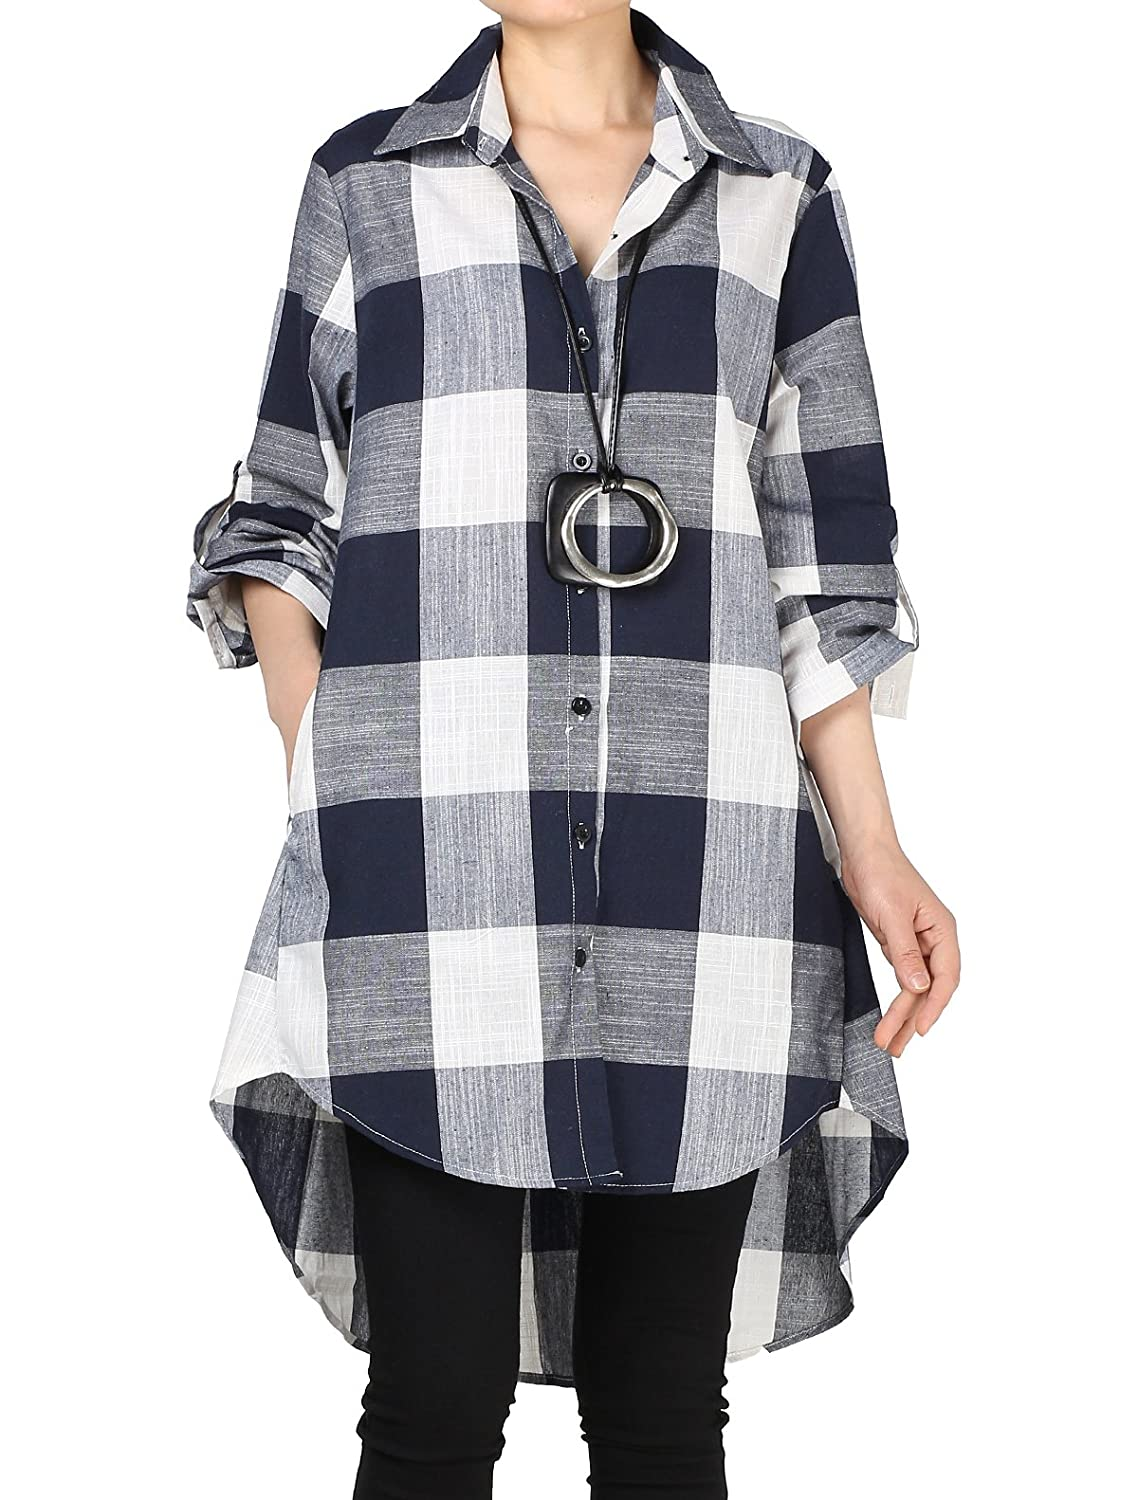 Mordenmiss Women's Tap Sleeve Shirt With Plaid Design Hi-low Hem Blouse CAY341